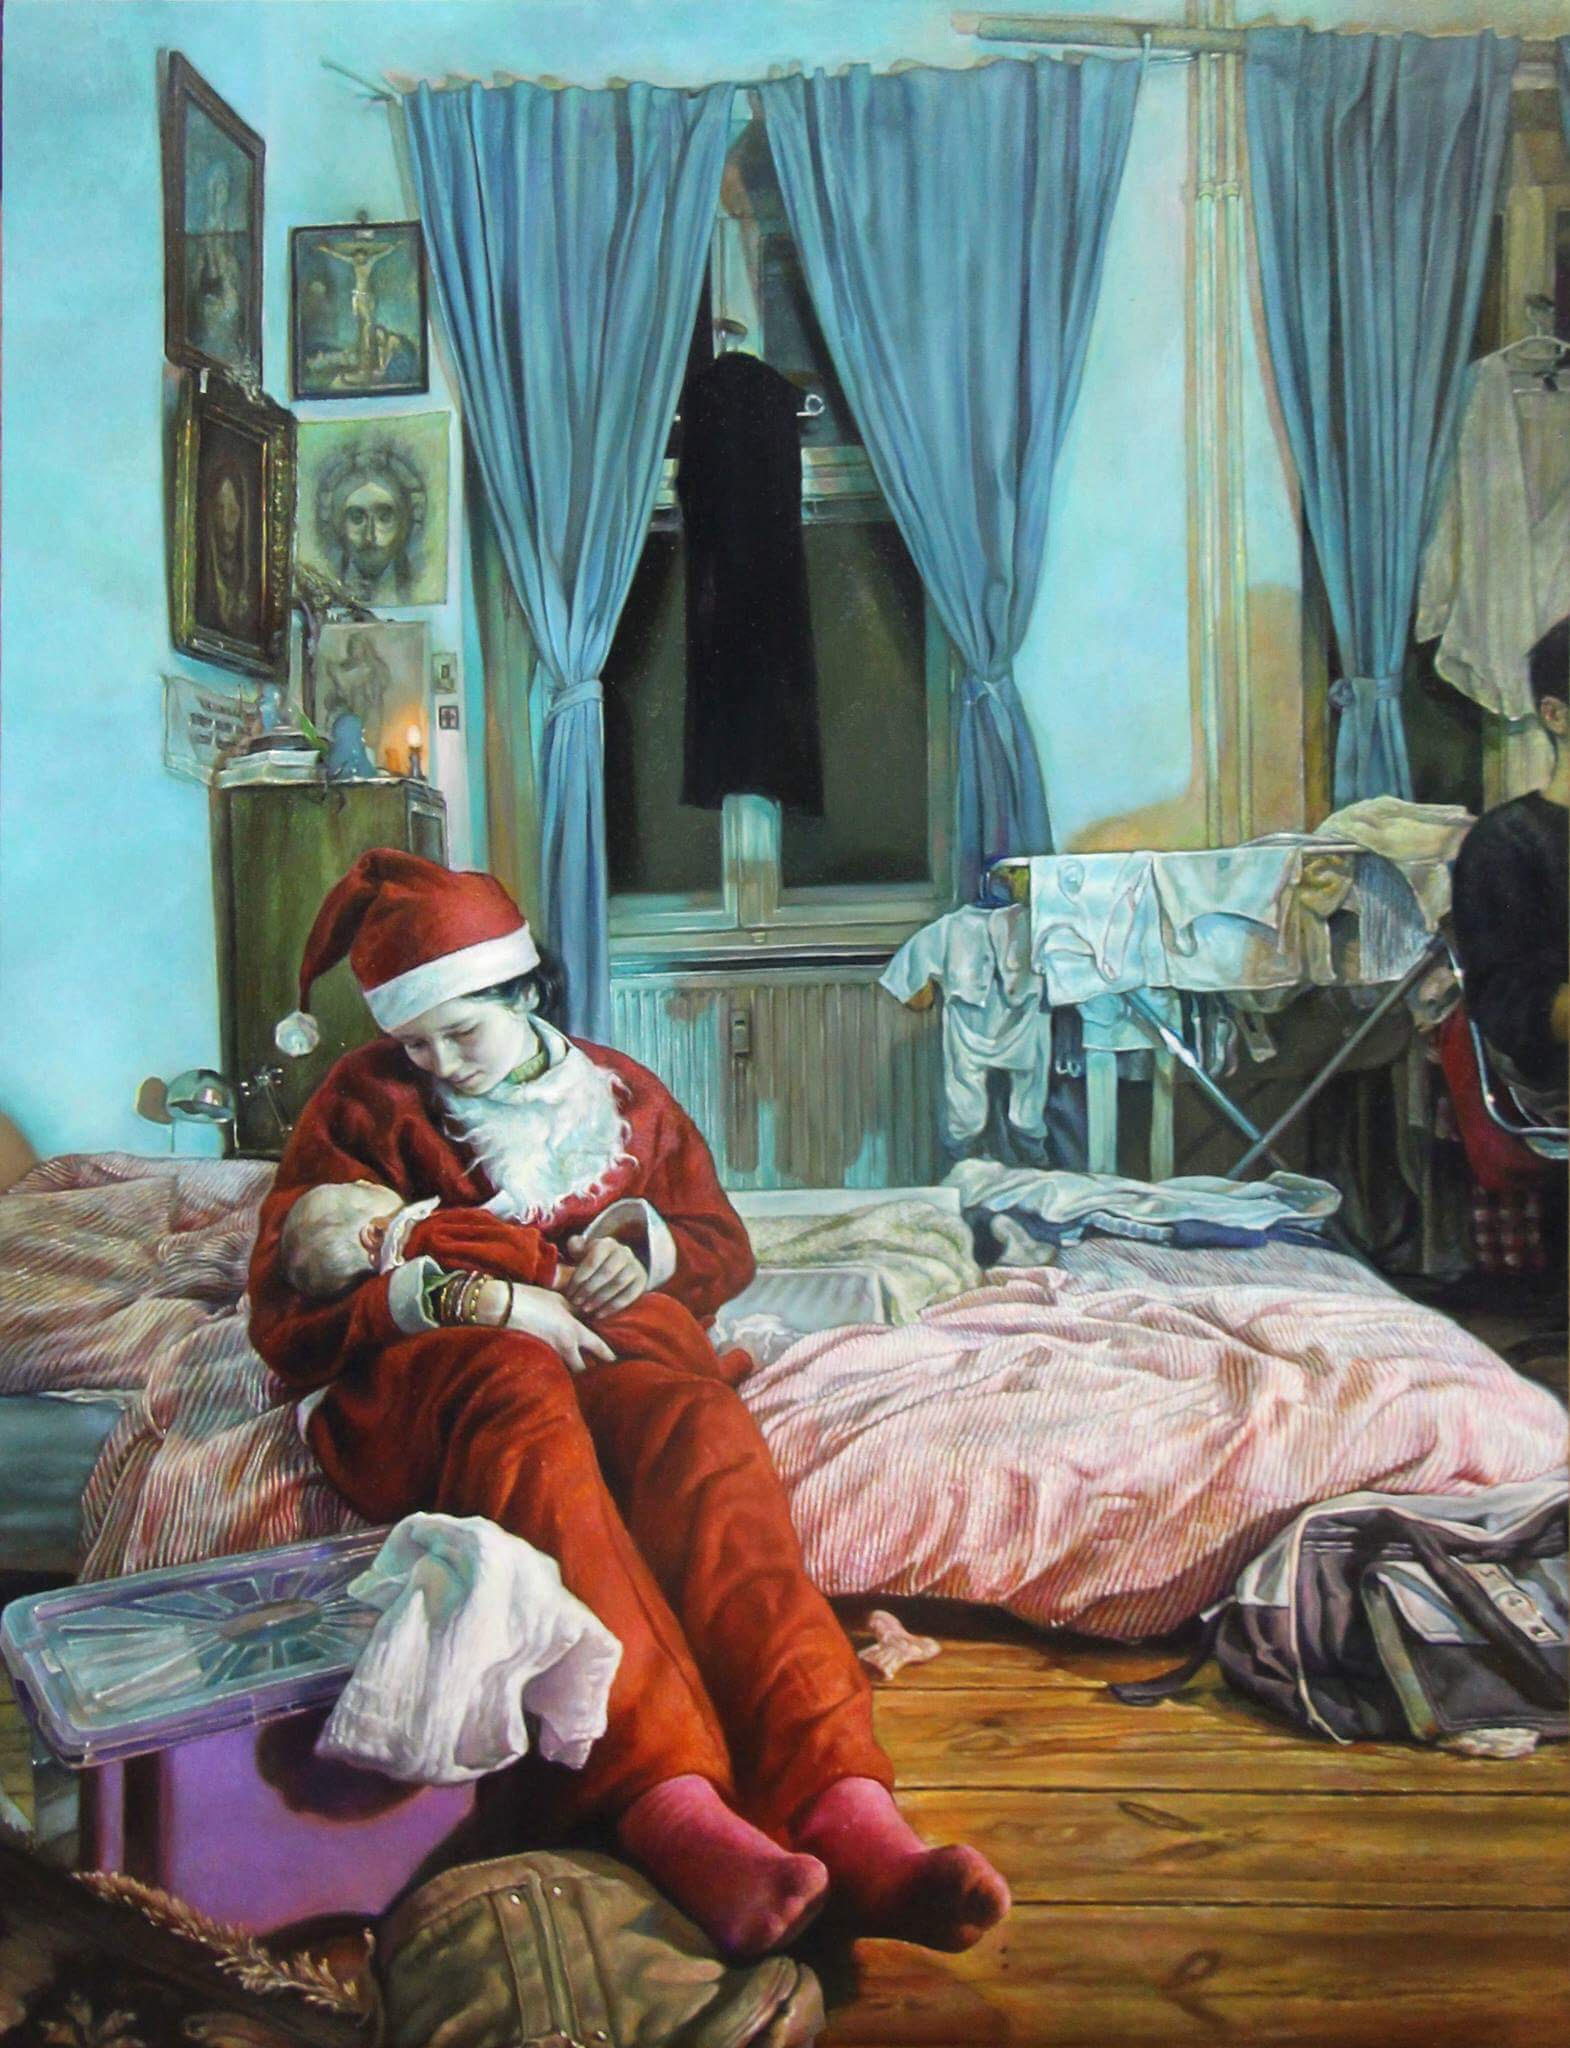 Le réel dévoilé , May.-Sept.2017, Oil on wood, 80 x 60 cm  Axel Pahlavi has taken a photo of a scene which has particularly touched him. At his home a friend's daughter dressed up as Santa Claus takes her newborn in her arms and sits on his bedside. Four years later he began painting a copy of this picture. And then, by a slow and detailed work which takes its inspiration in Dutch painting, a hidden and symbolic meaning of the scene is revealed to him. Layer after layer he can discover it and bring us to see it. At the same time his copying work is gaining a new and intense significance. This painting sums up particularly the artist's personal approach full of fervour and humility.